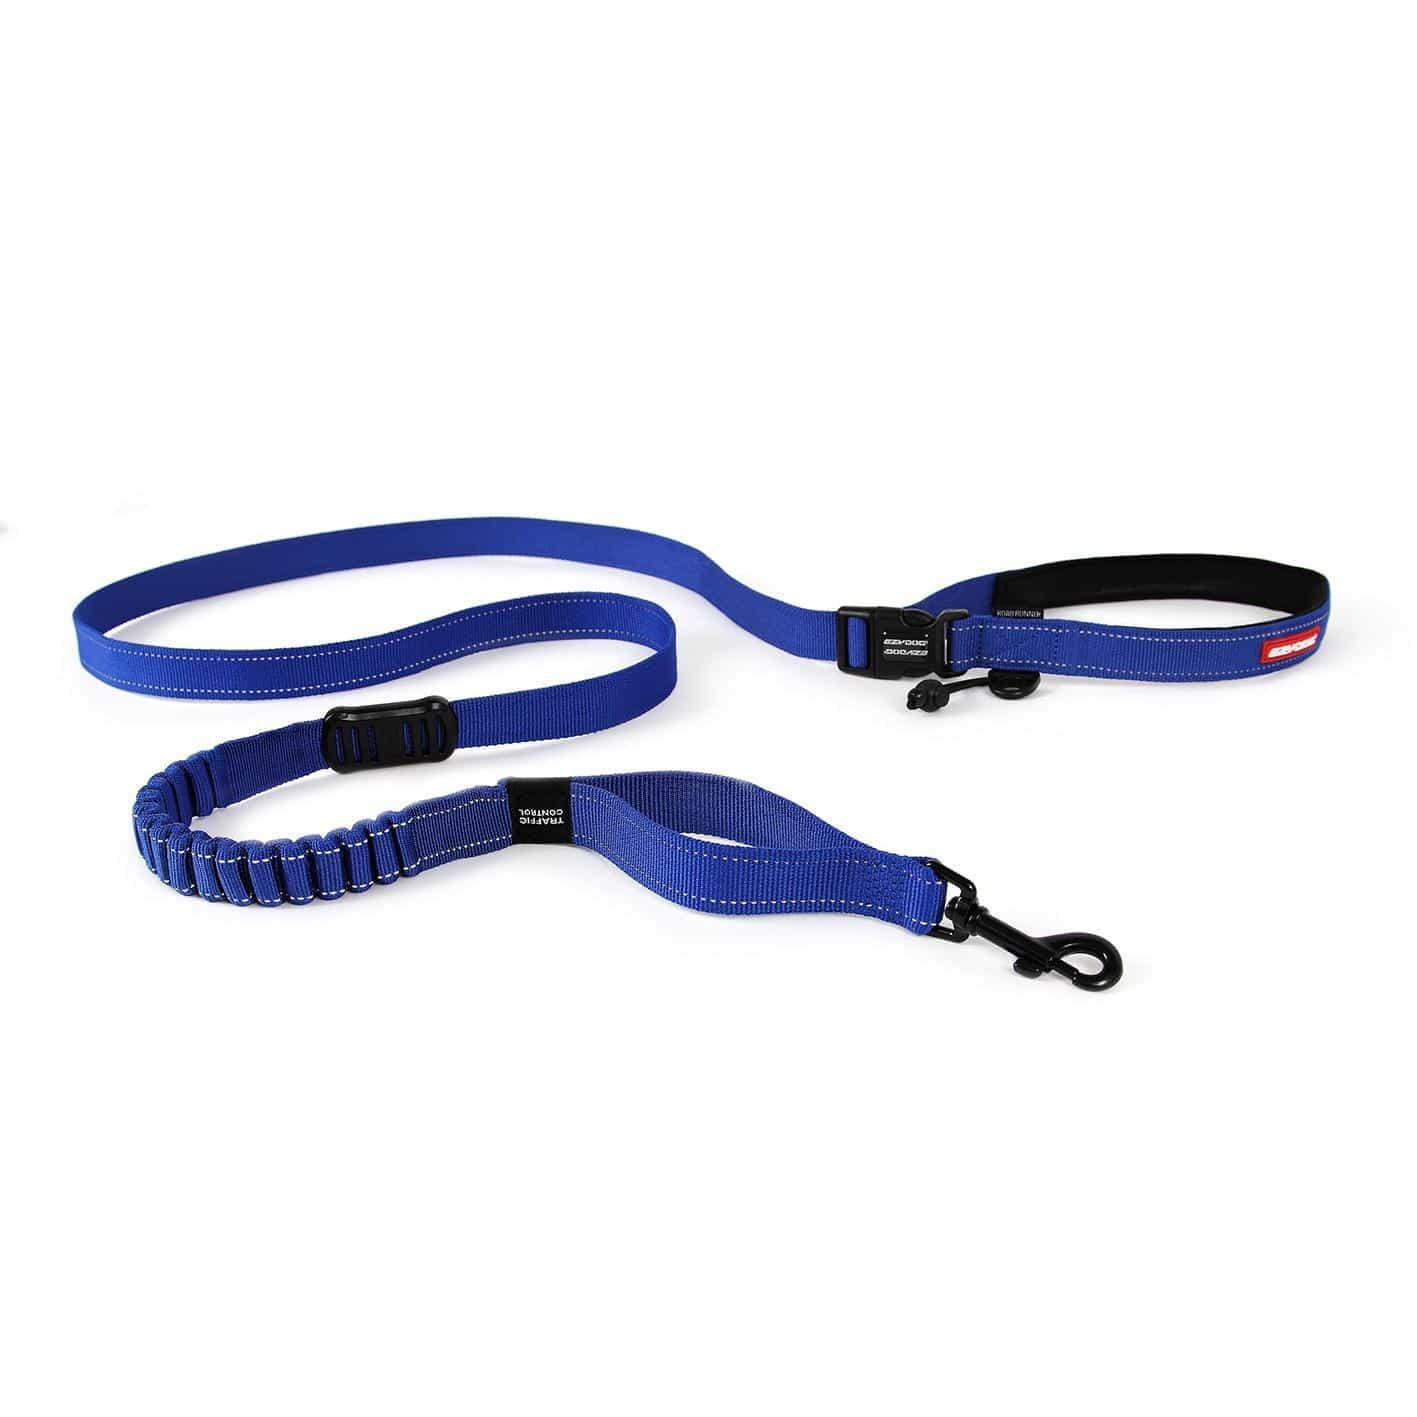 Ezydog EzyDog Road Runner Leash